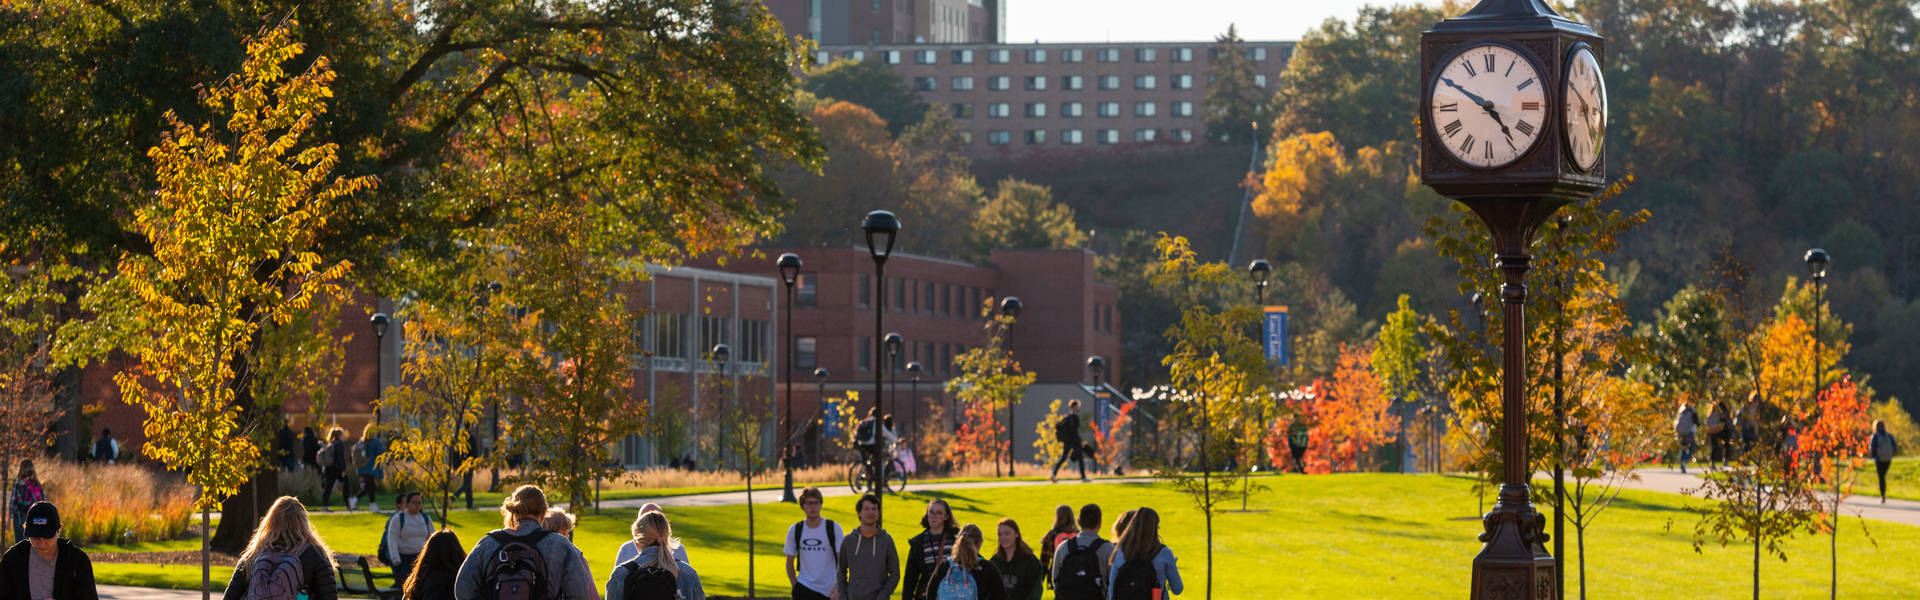 Students by clock tower in fall